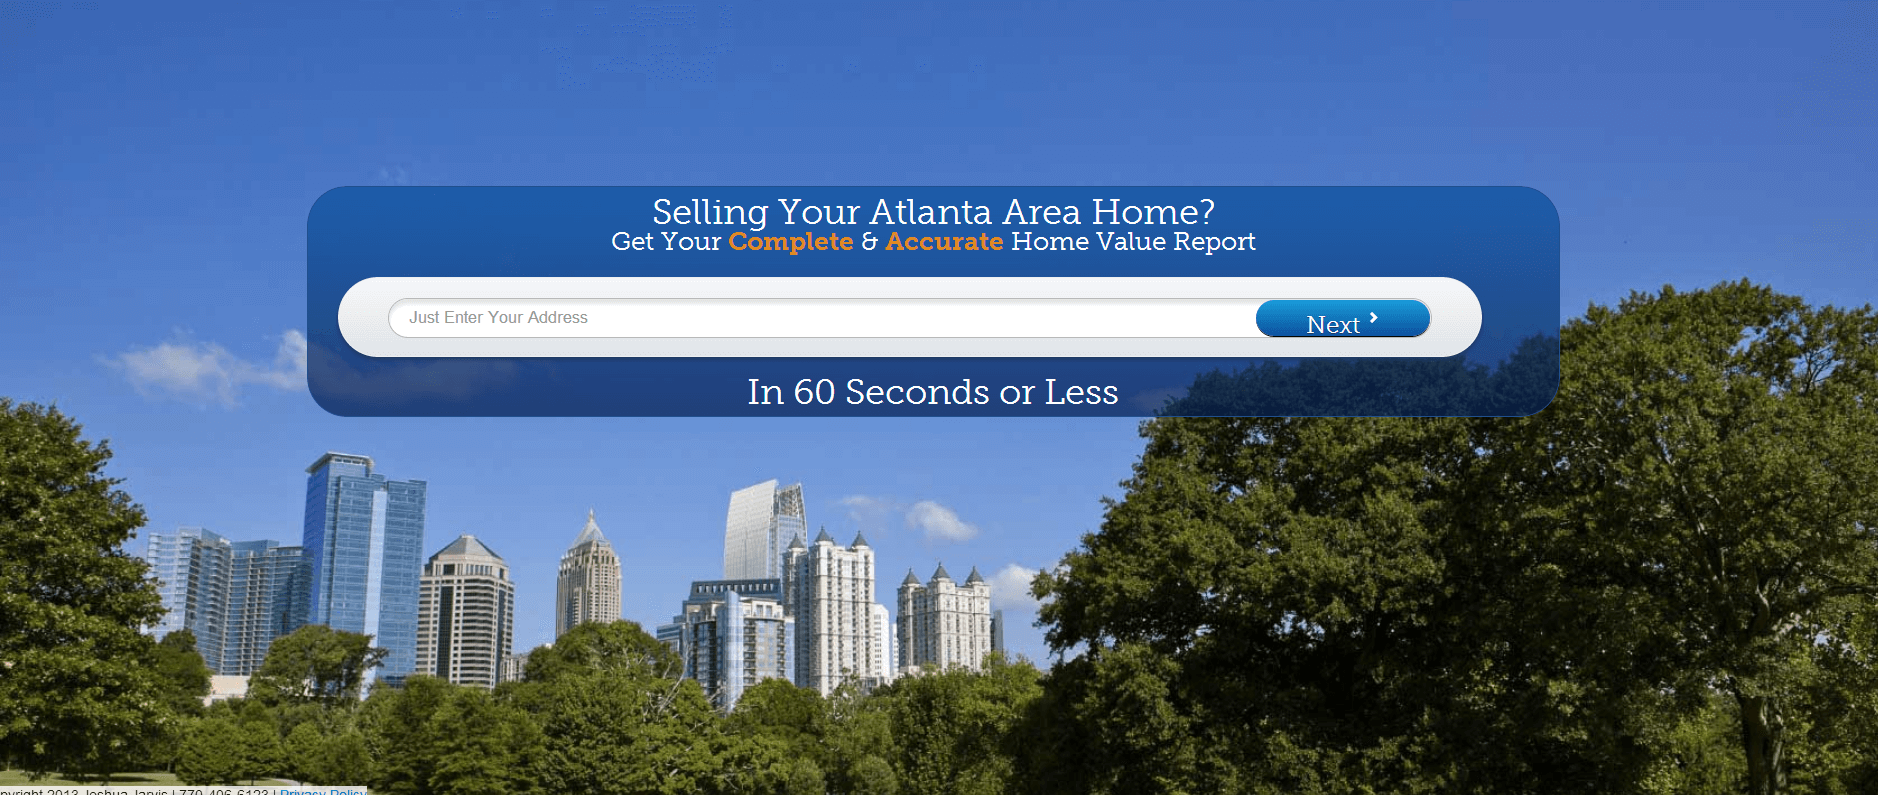 Generating Seller Leads With Home Value Leads